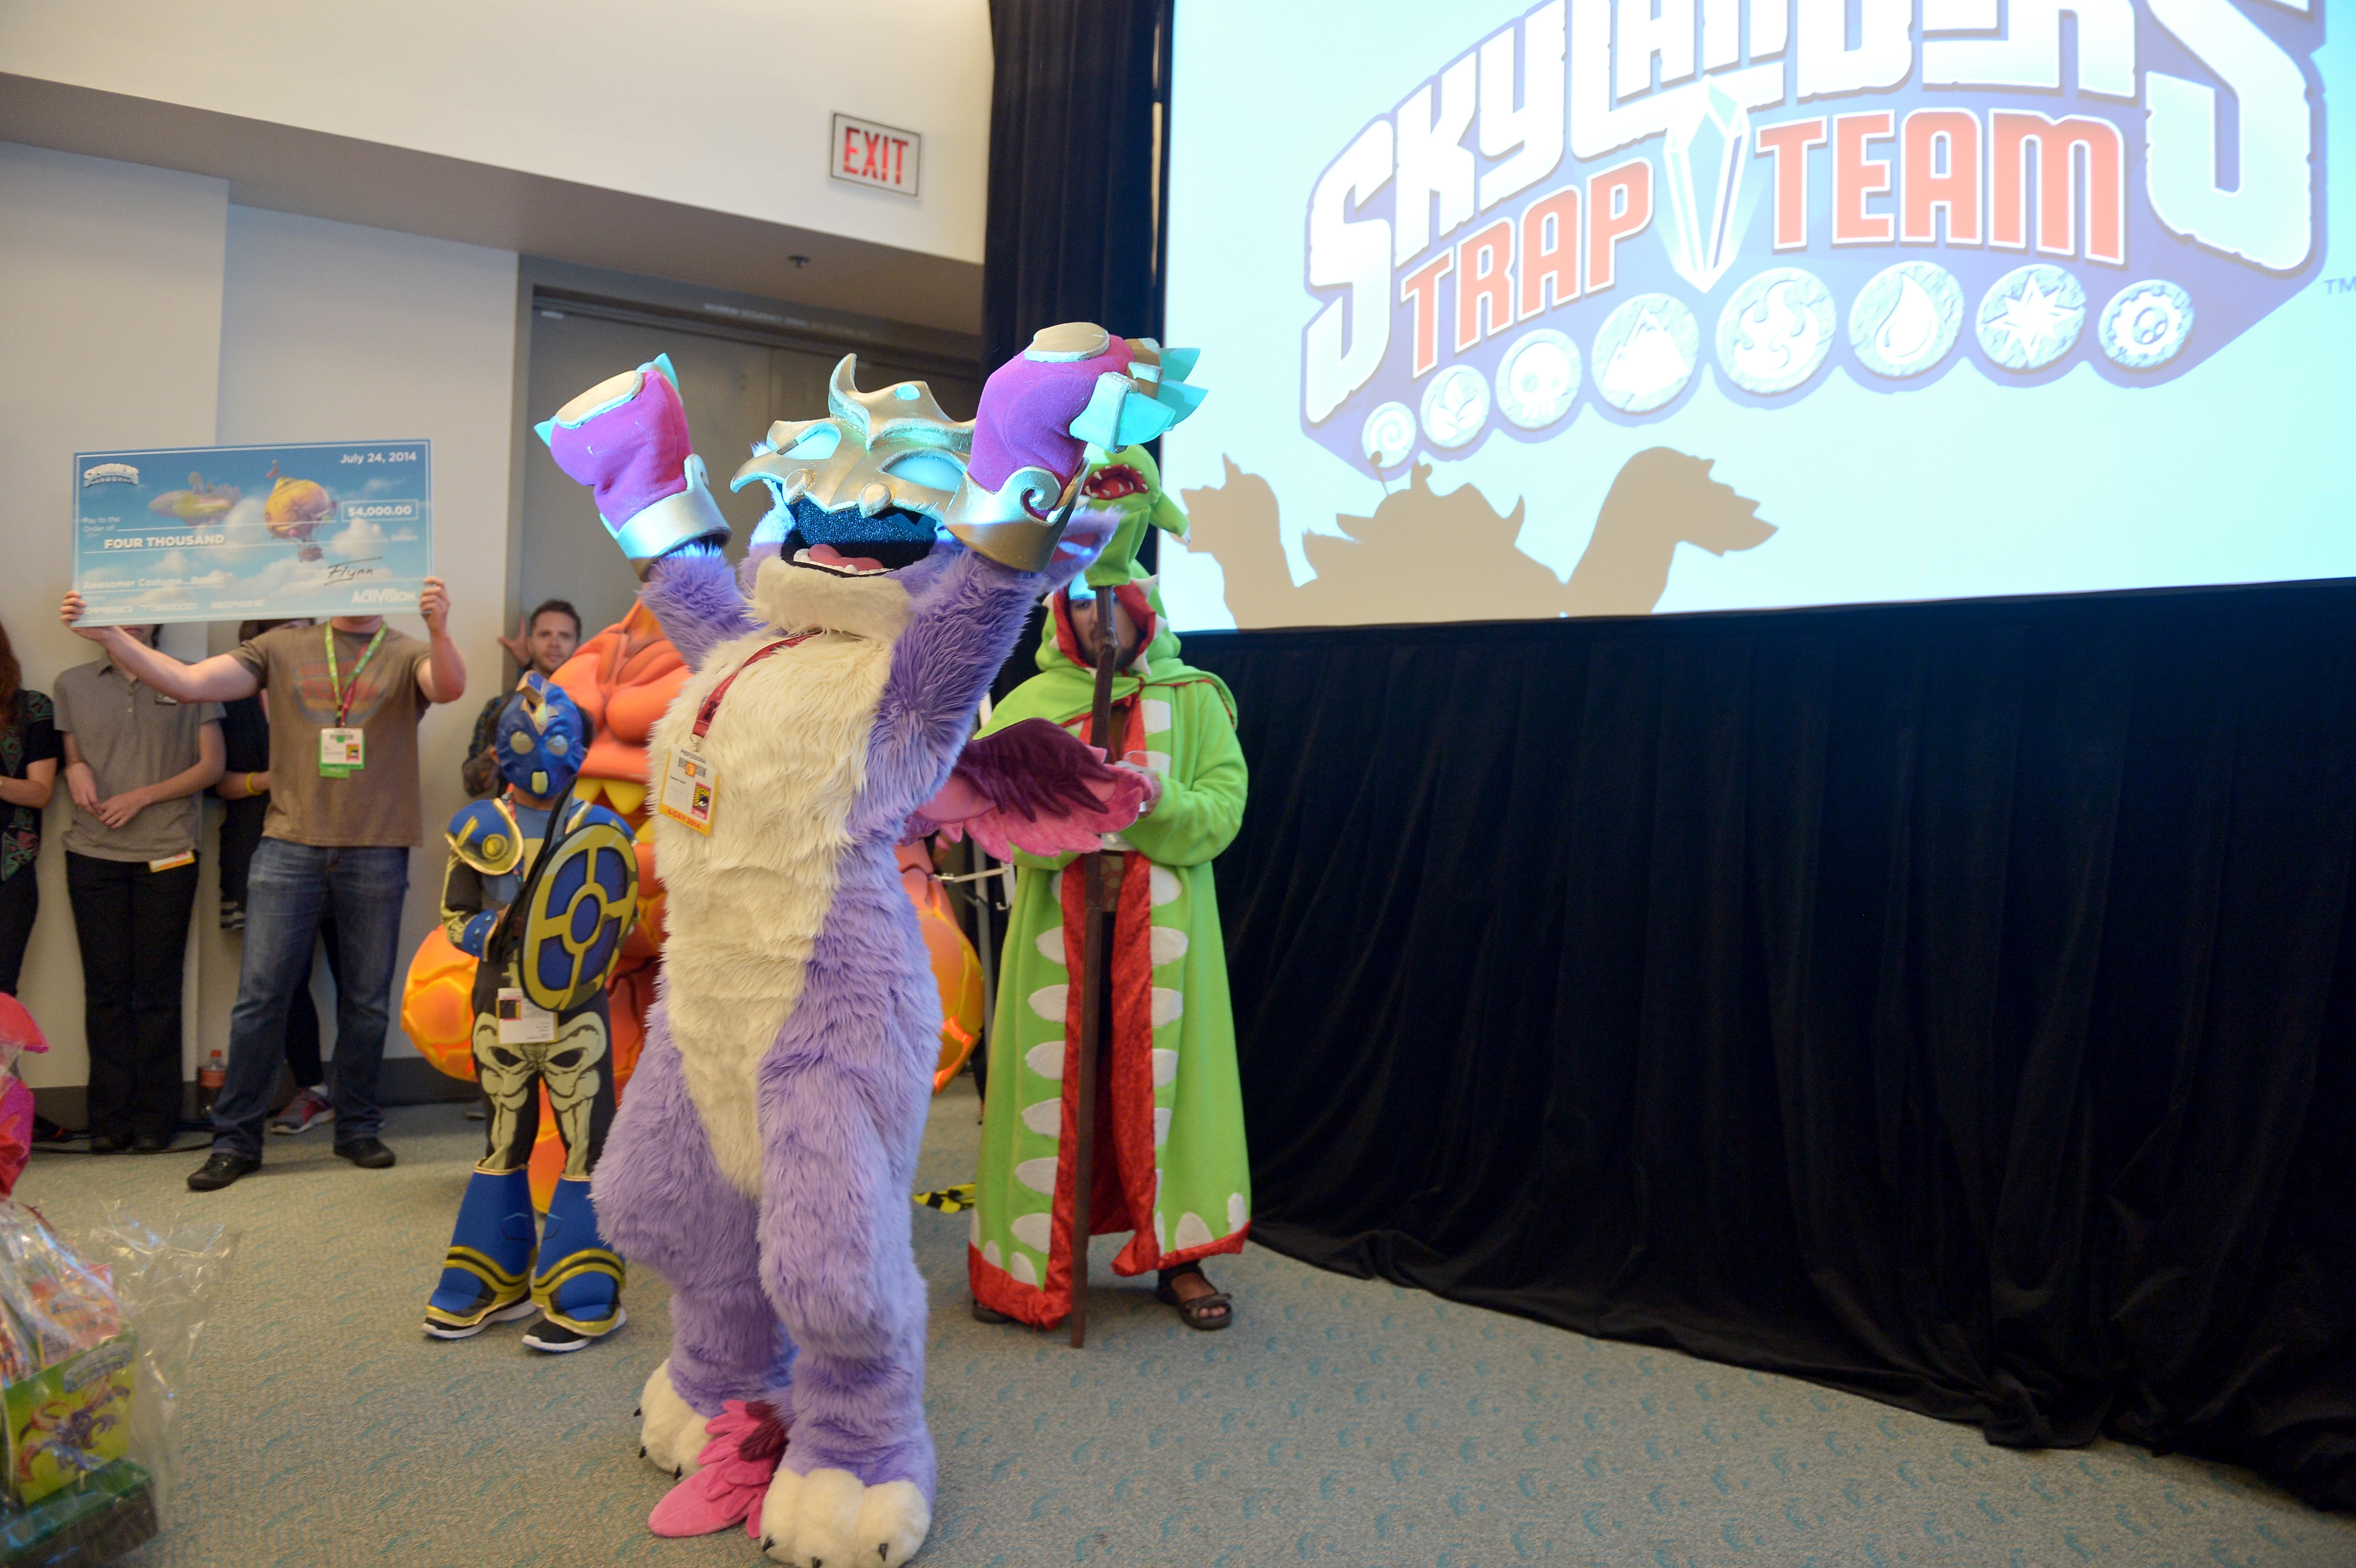 In this photo distributed by Activision Publishing Inc., Skylanders fans celebrate the upcoming launch of Skylanders Trap Team by participating in a costume contest at San Diego Comic-Con 2014 on July 24, 2014 in San Diego, California. Shannon Deeds beat out other contestants for the ultimate prize and bragging rights of being the best costumed character, Scratch. (Photo by Charley Gallay/Getty Images for Activision)